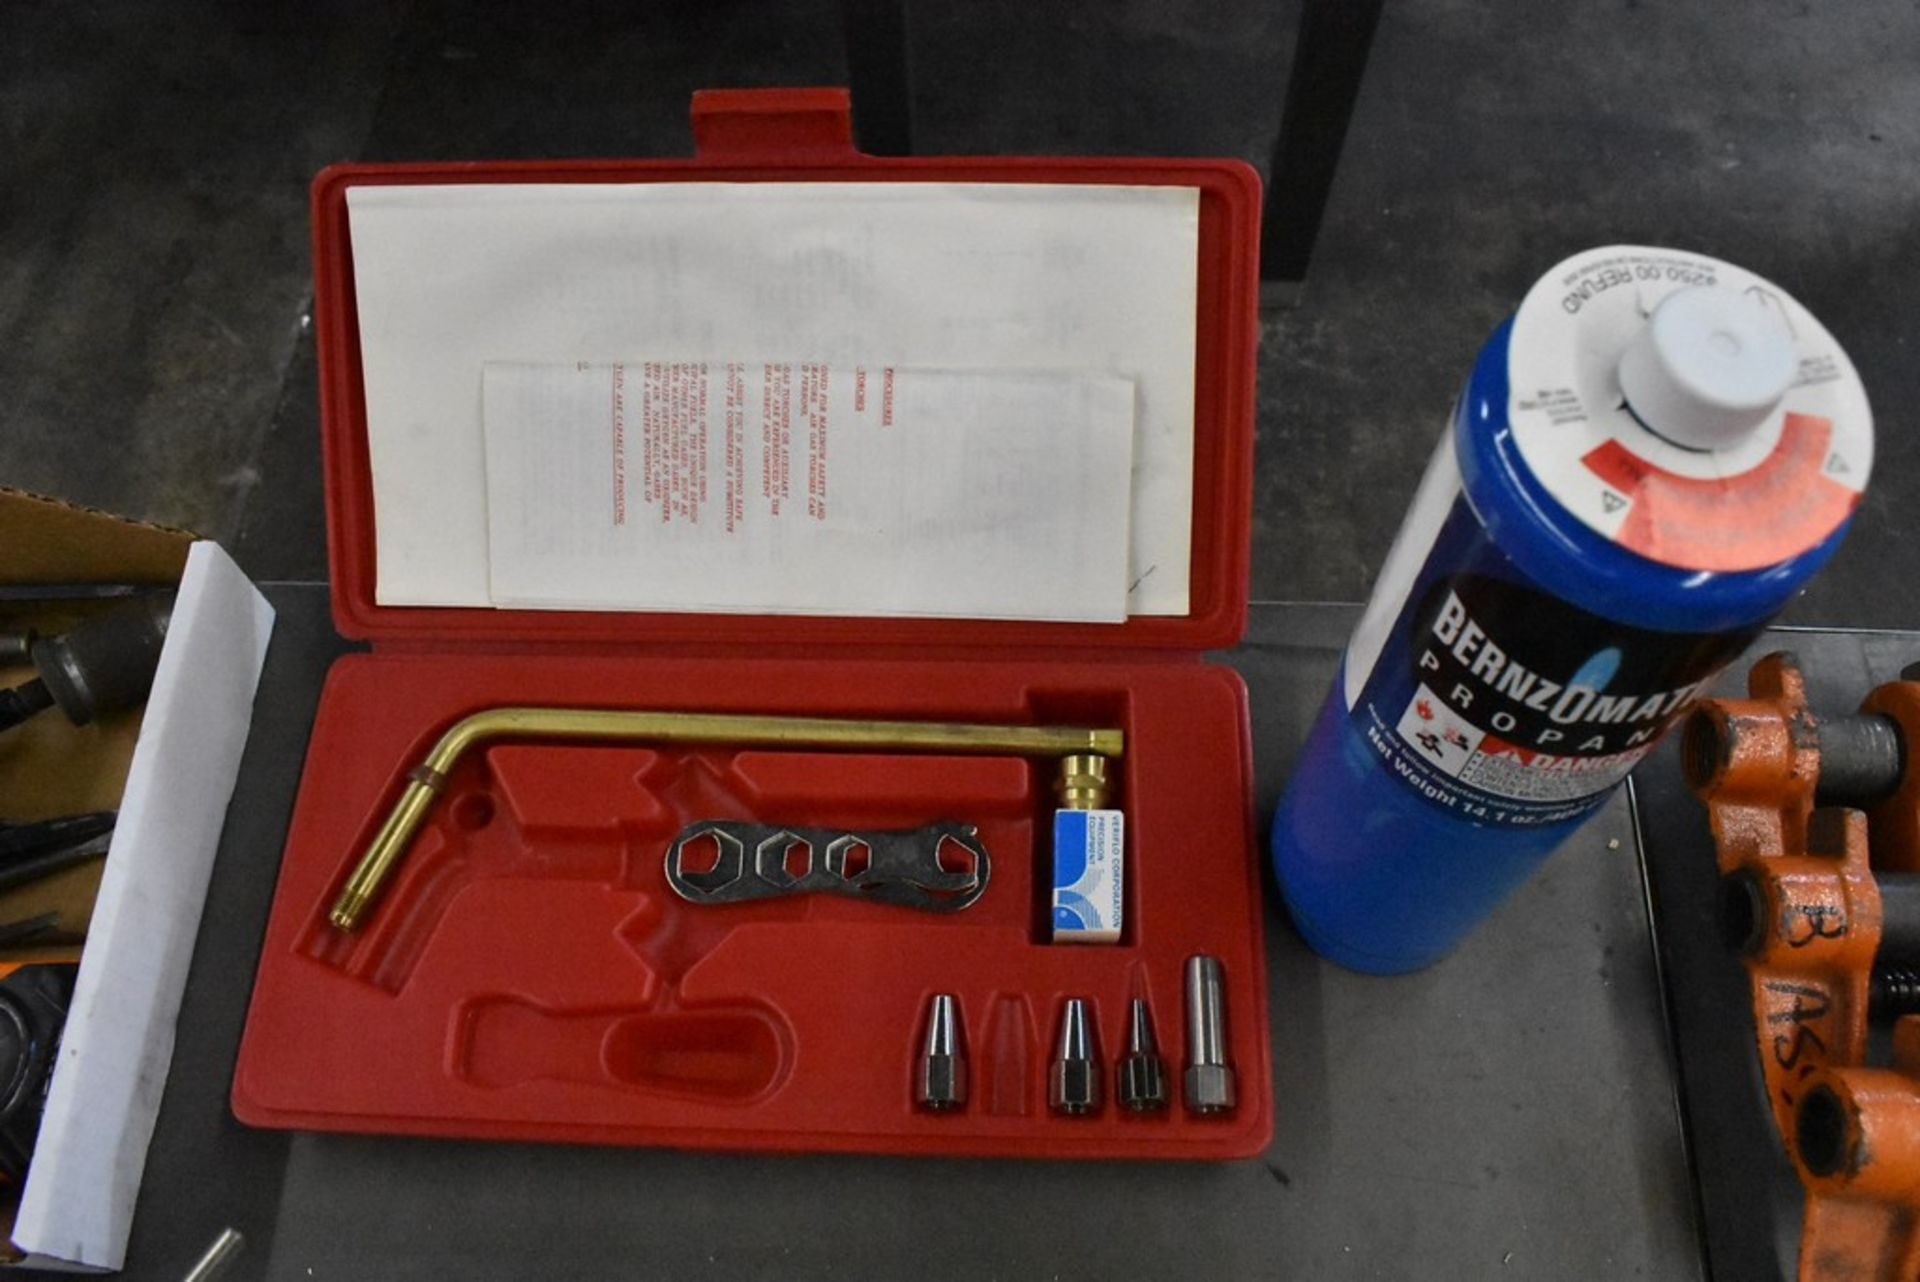 VERITLO MODEL 3A2W TORCH KIT WITH PROPANE TANK - Image 2 of 4